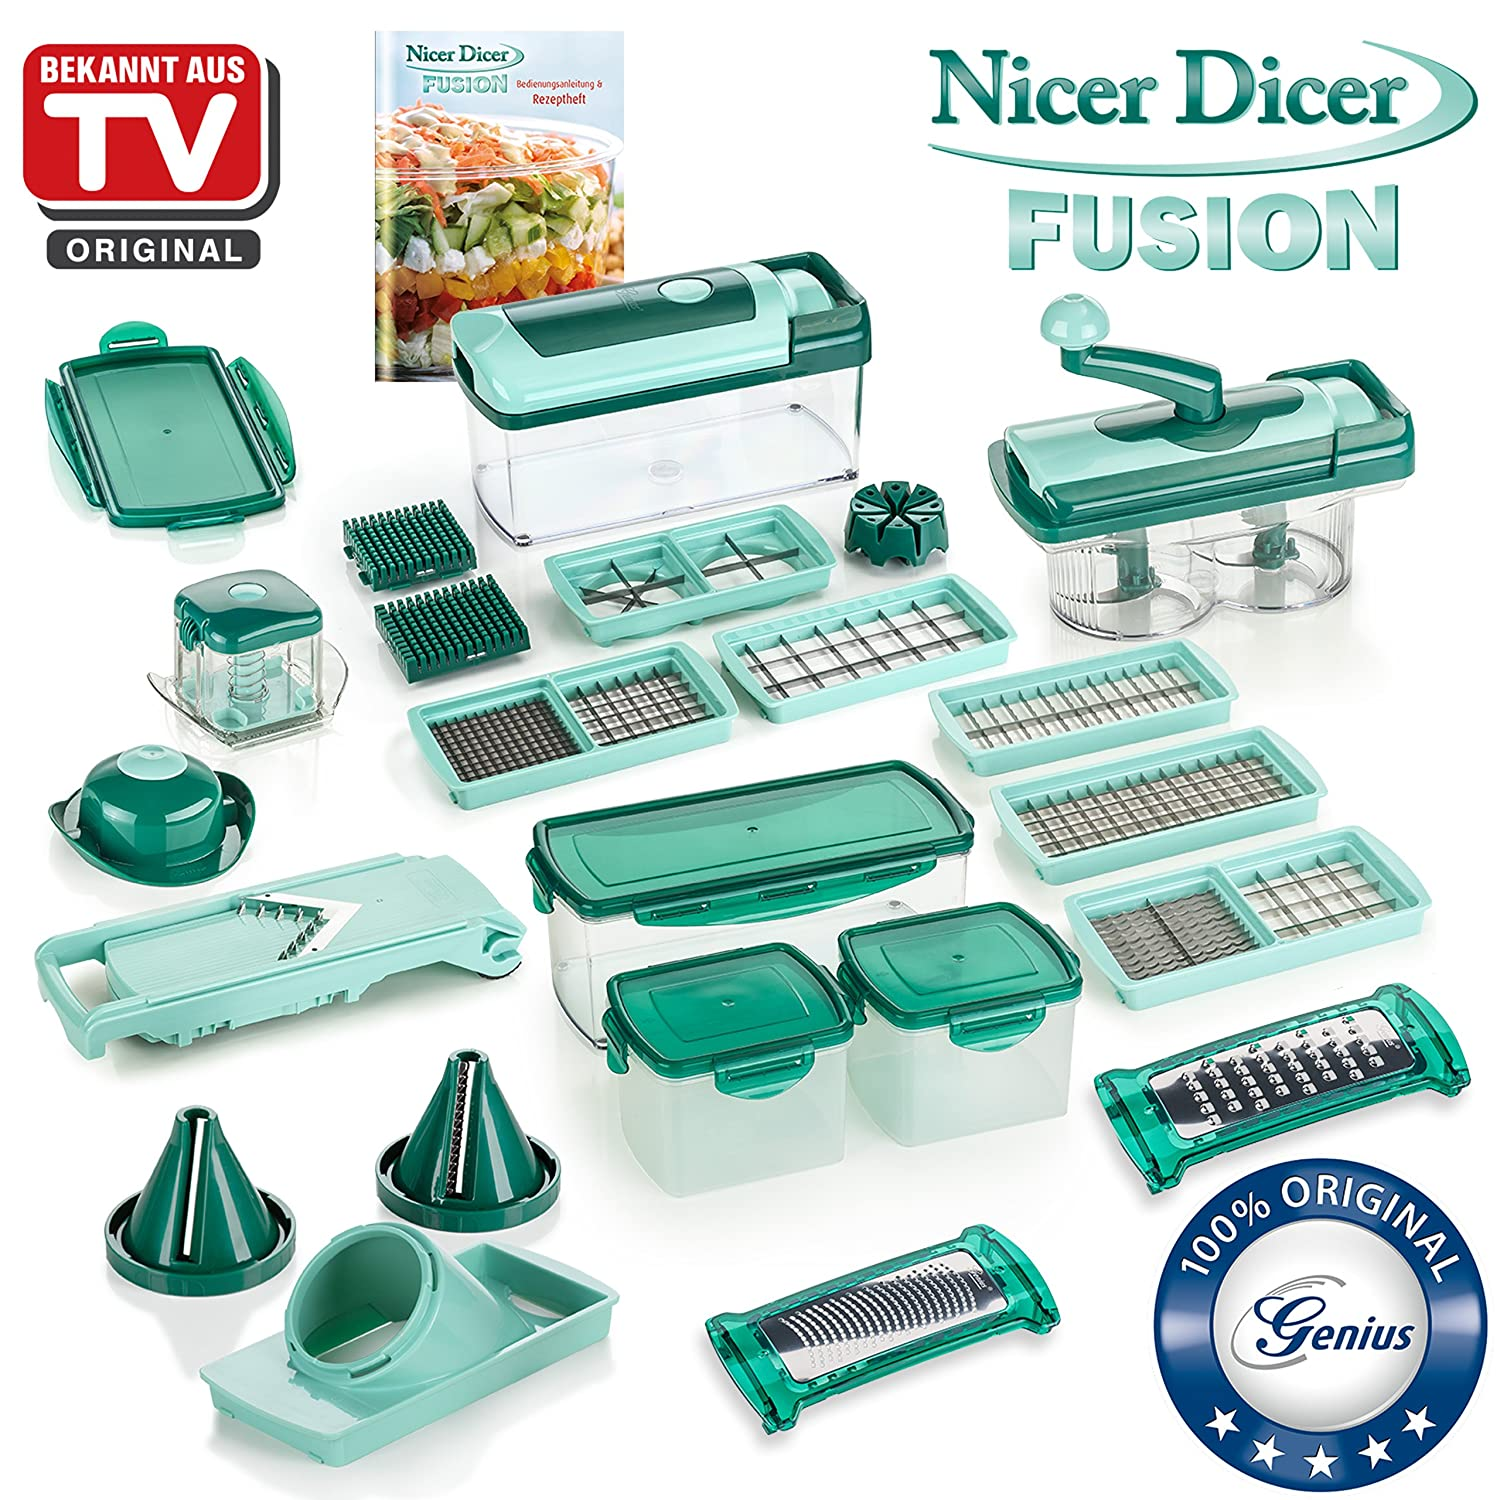 34 piece julienne slicer cutter genius nicer dicer quarter eighth decor spirals ebay. Black Bedroom Furniture Sets. Home Design Ideas